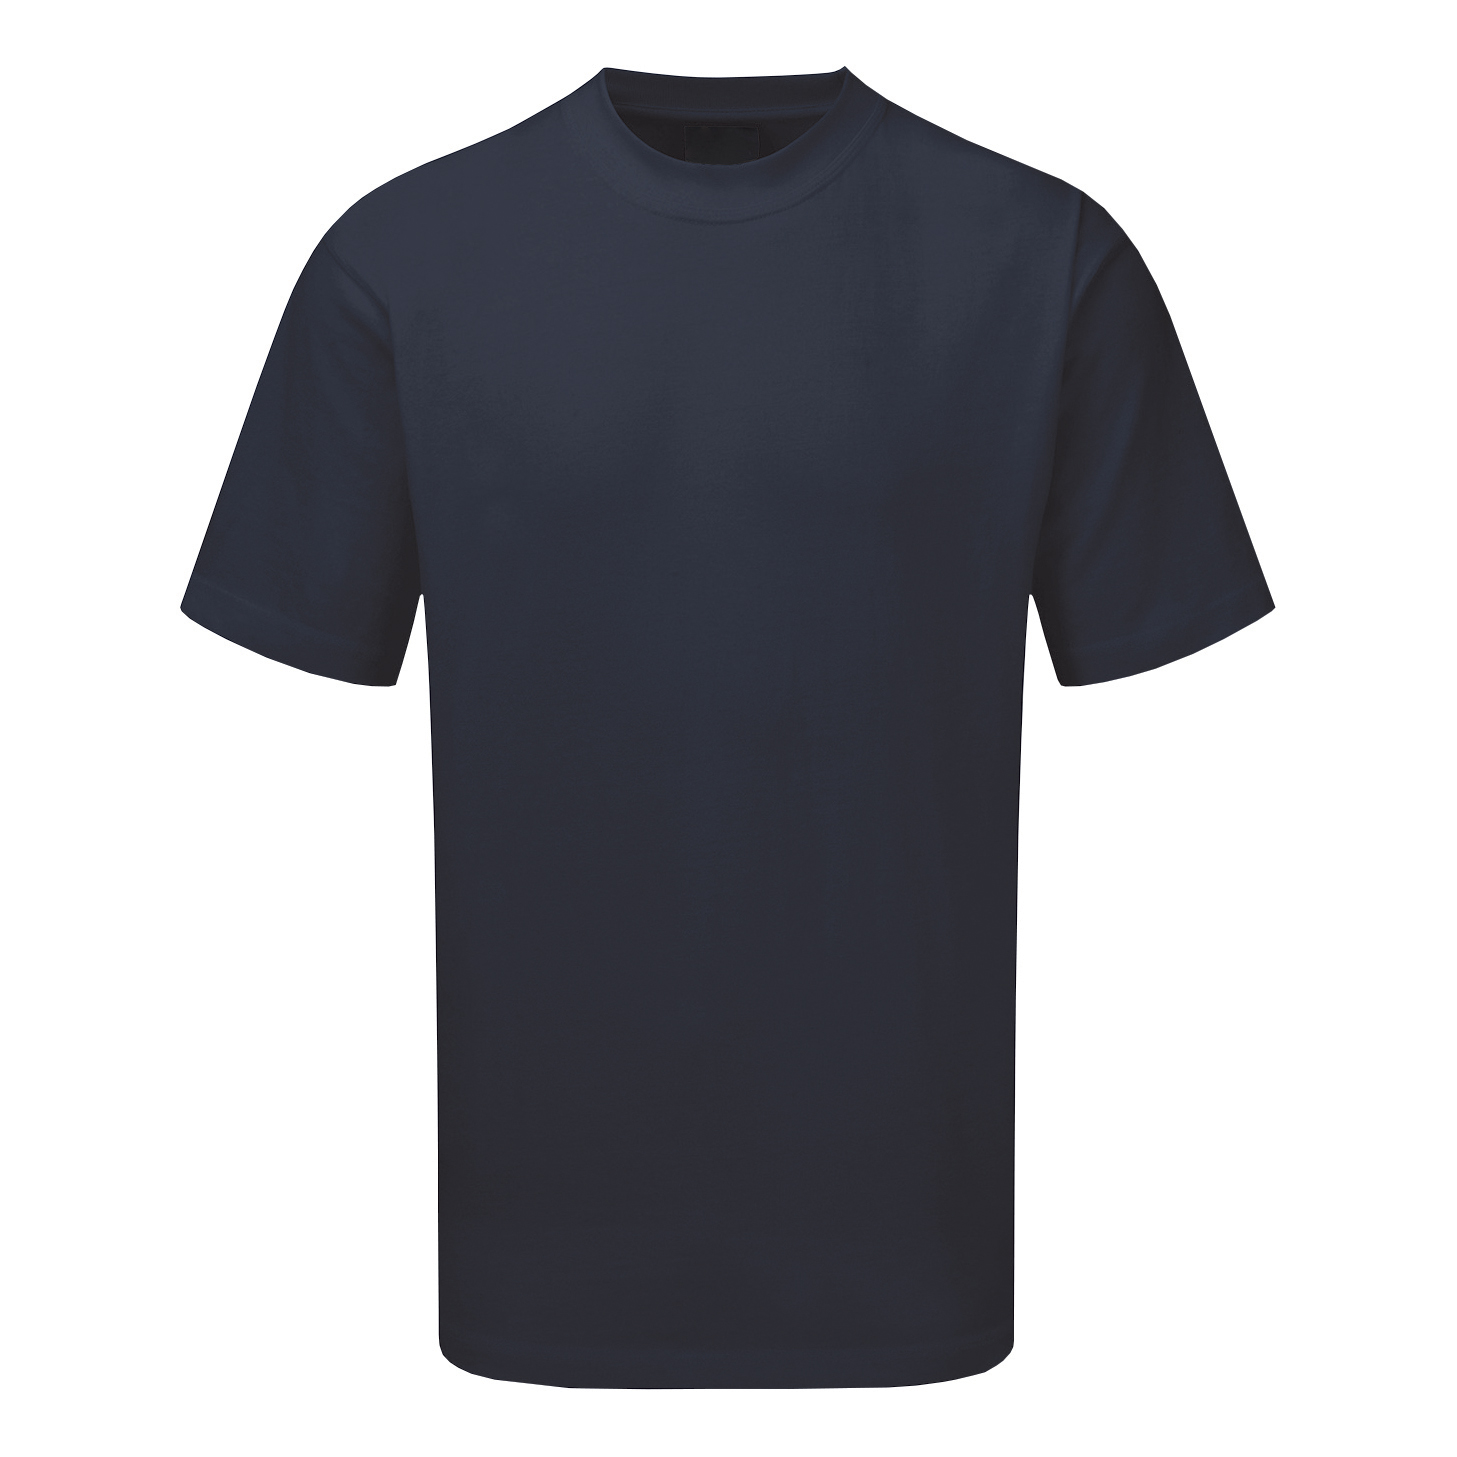 Business T Shirt Premium Cotton XS 100 Size XS Navy